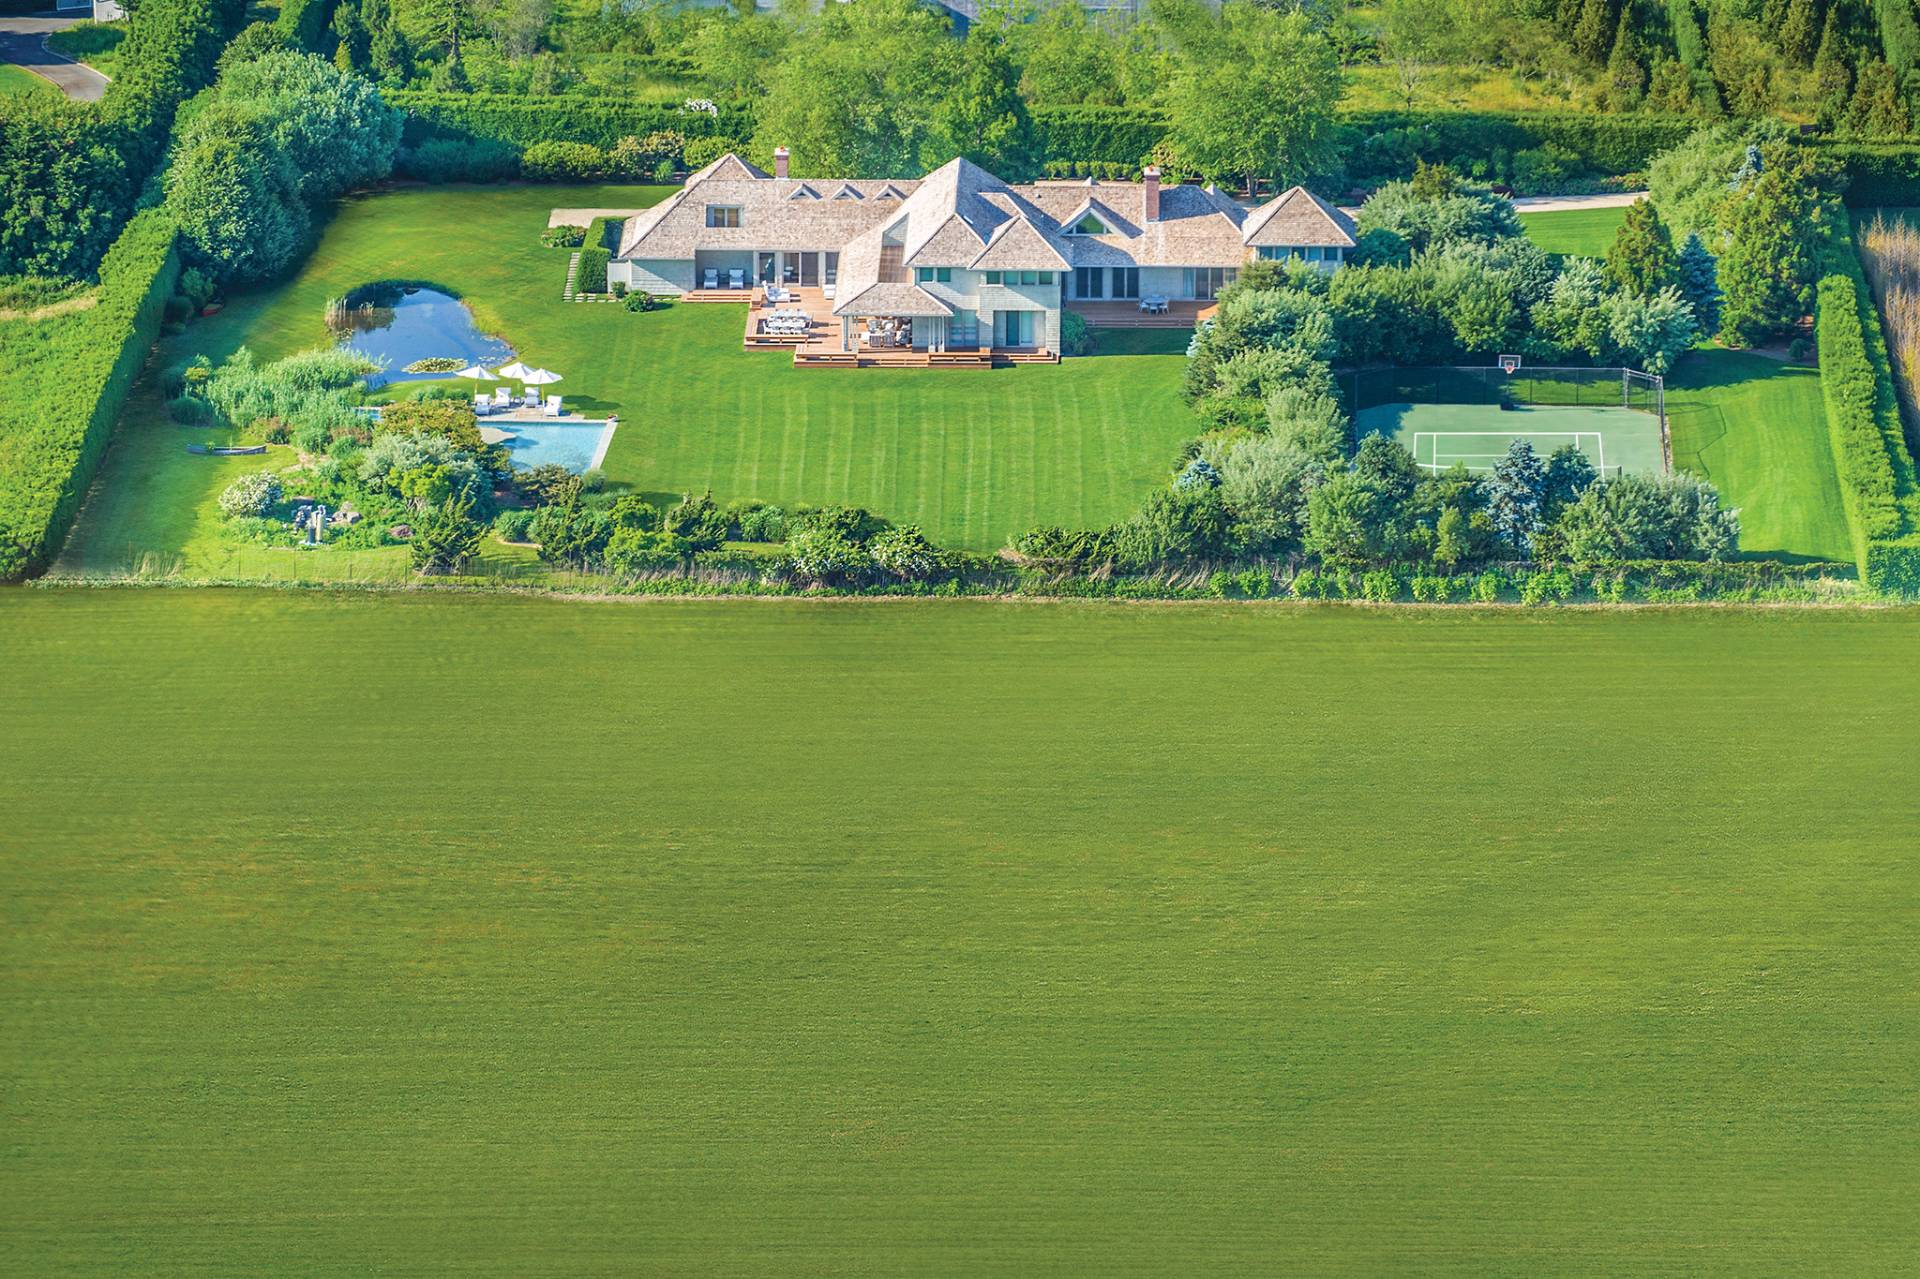 Single Family Home for Sale at Superlative Sagaponack South Estate 836 Sagg Main Street, Sagaponack, New York